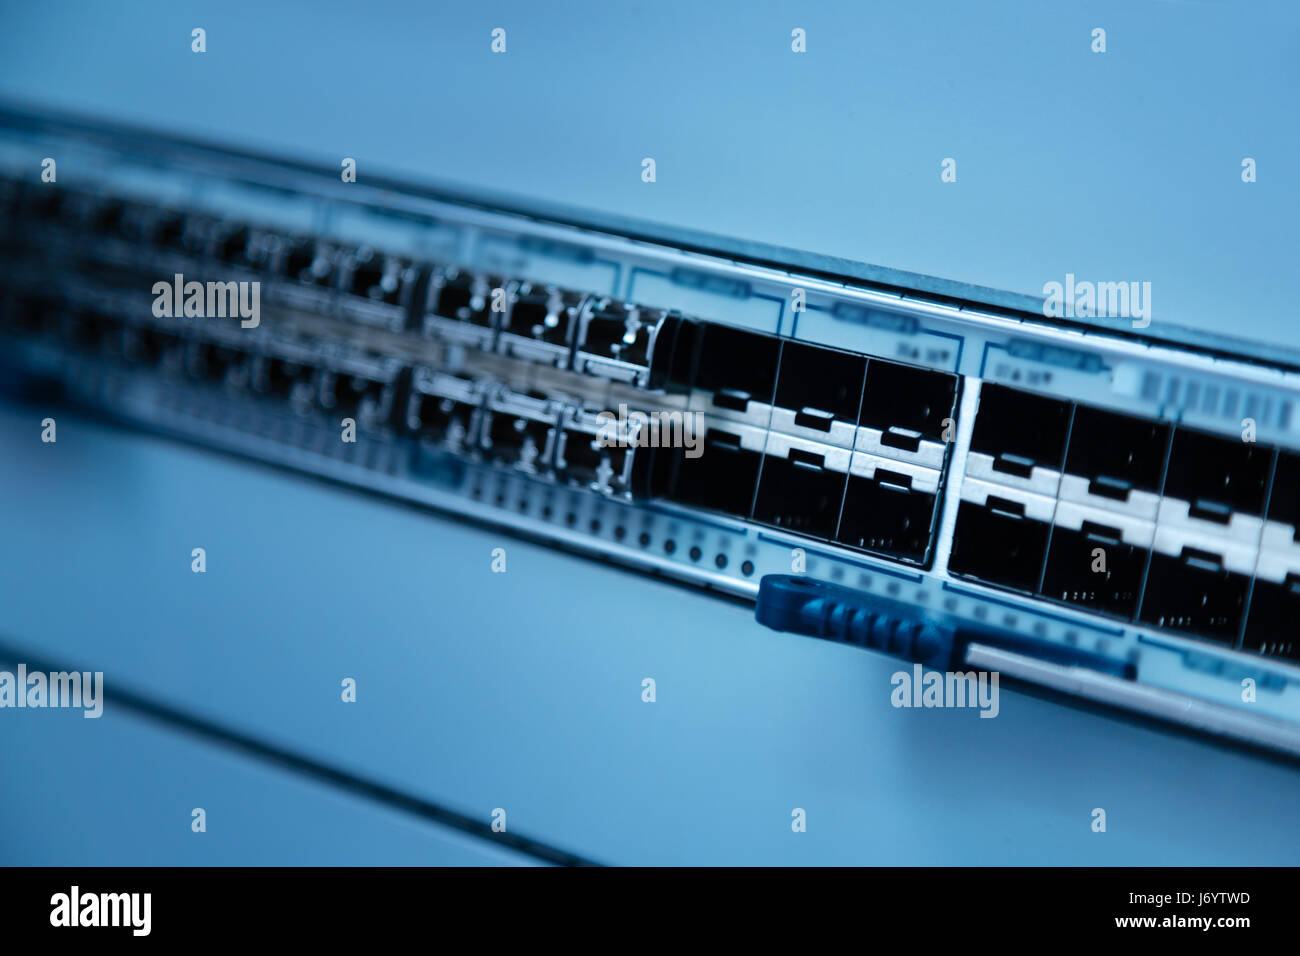 Close up of switch panel for LAN cables Stock Photo